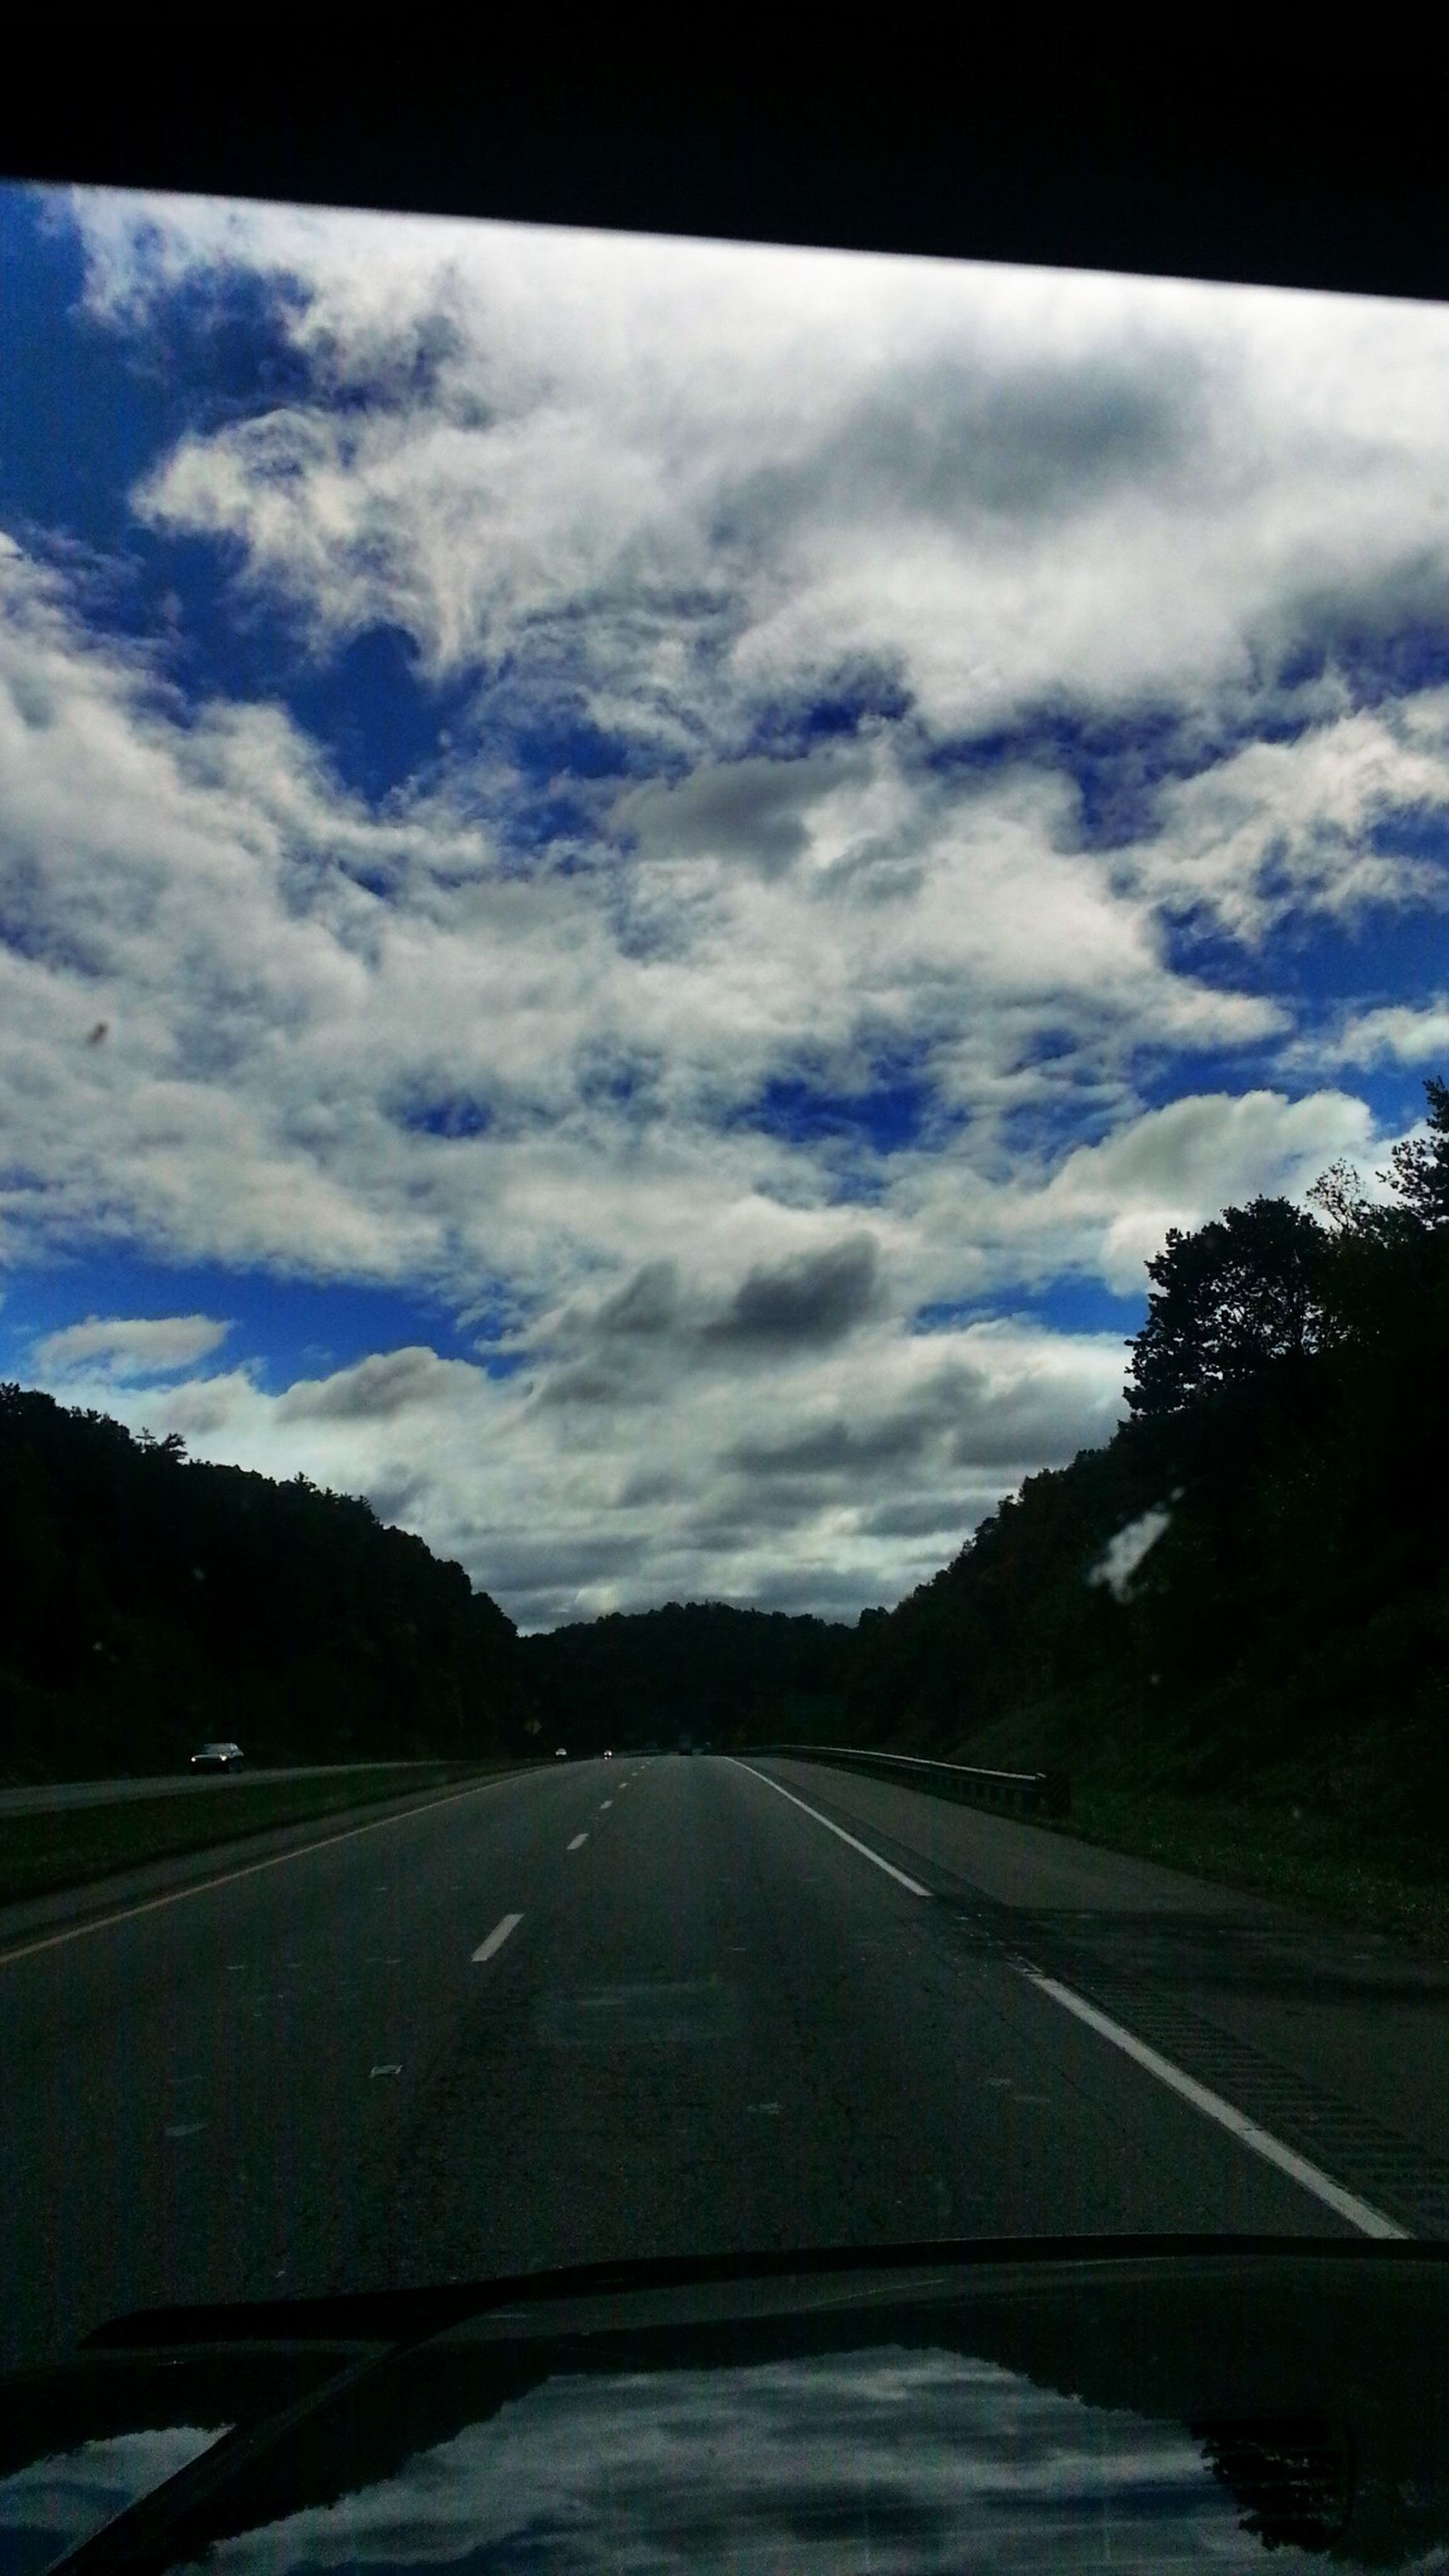 transportation, road, sky, the way forward, country road, road marking, landscape, cloud - sky, diminishing perspective, car, cloud, vanishing point, tree, tranquil scene, vehicle interior, windshield, nature, tranquility, mountain, land vehicle